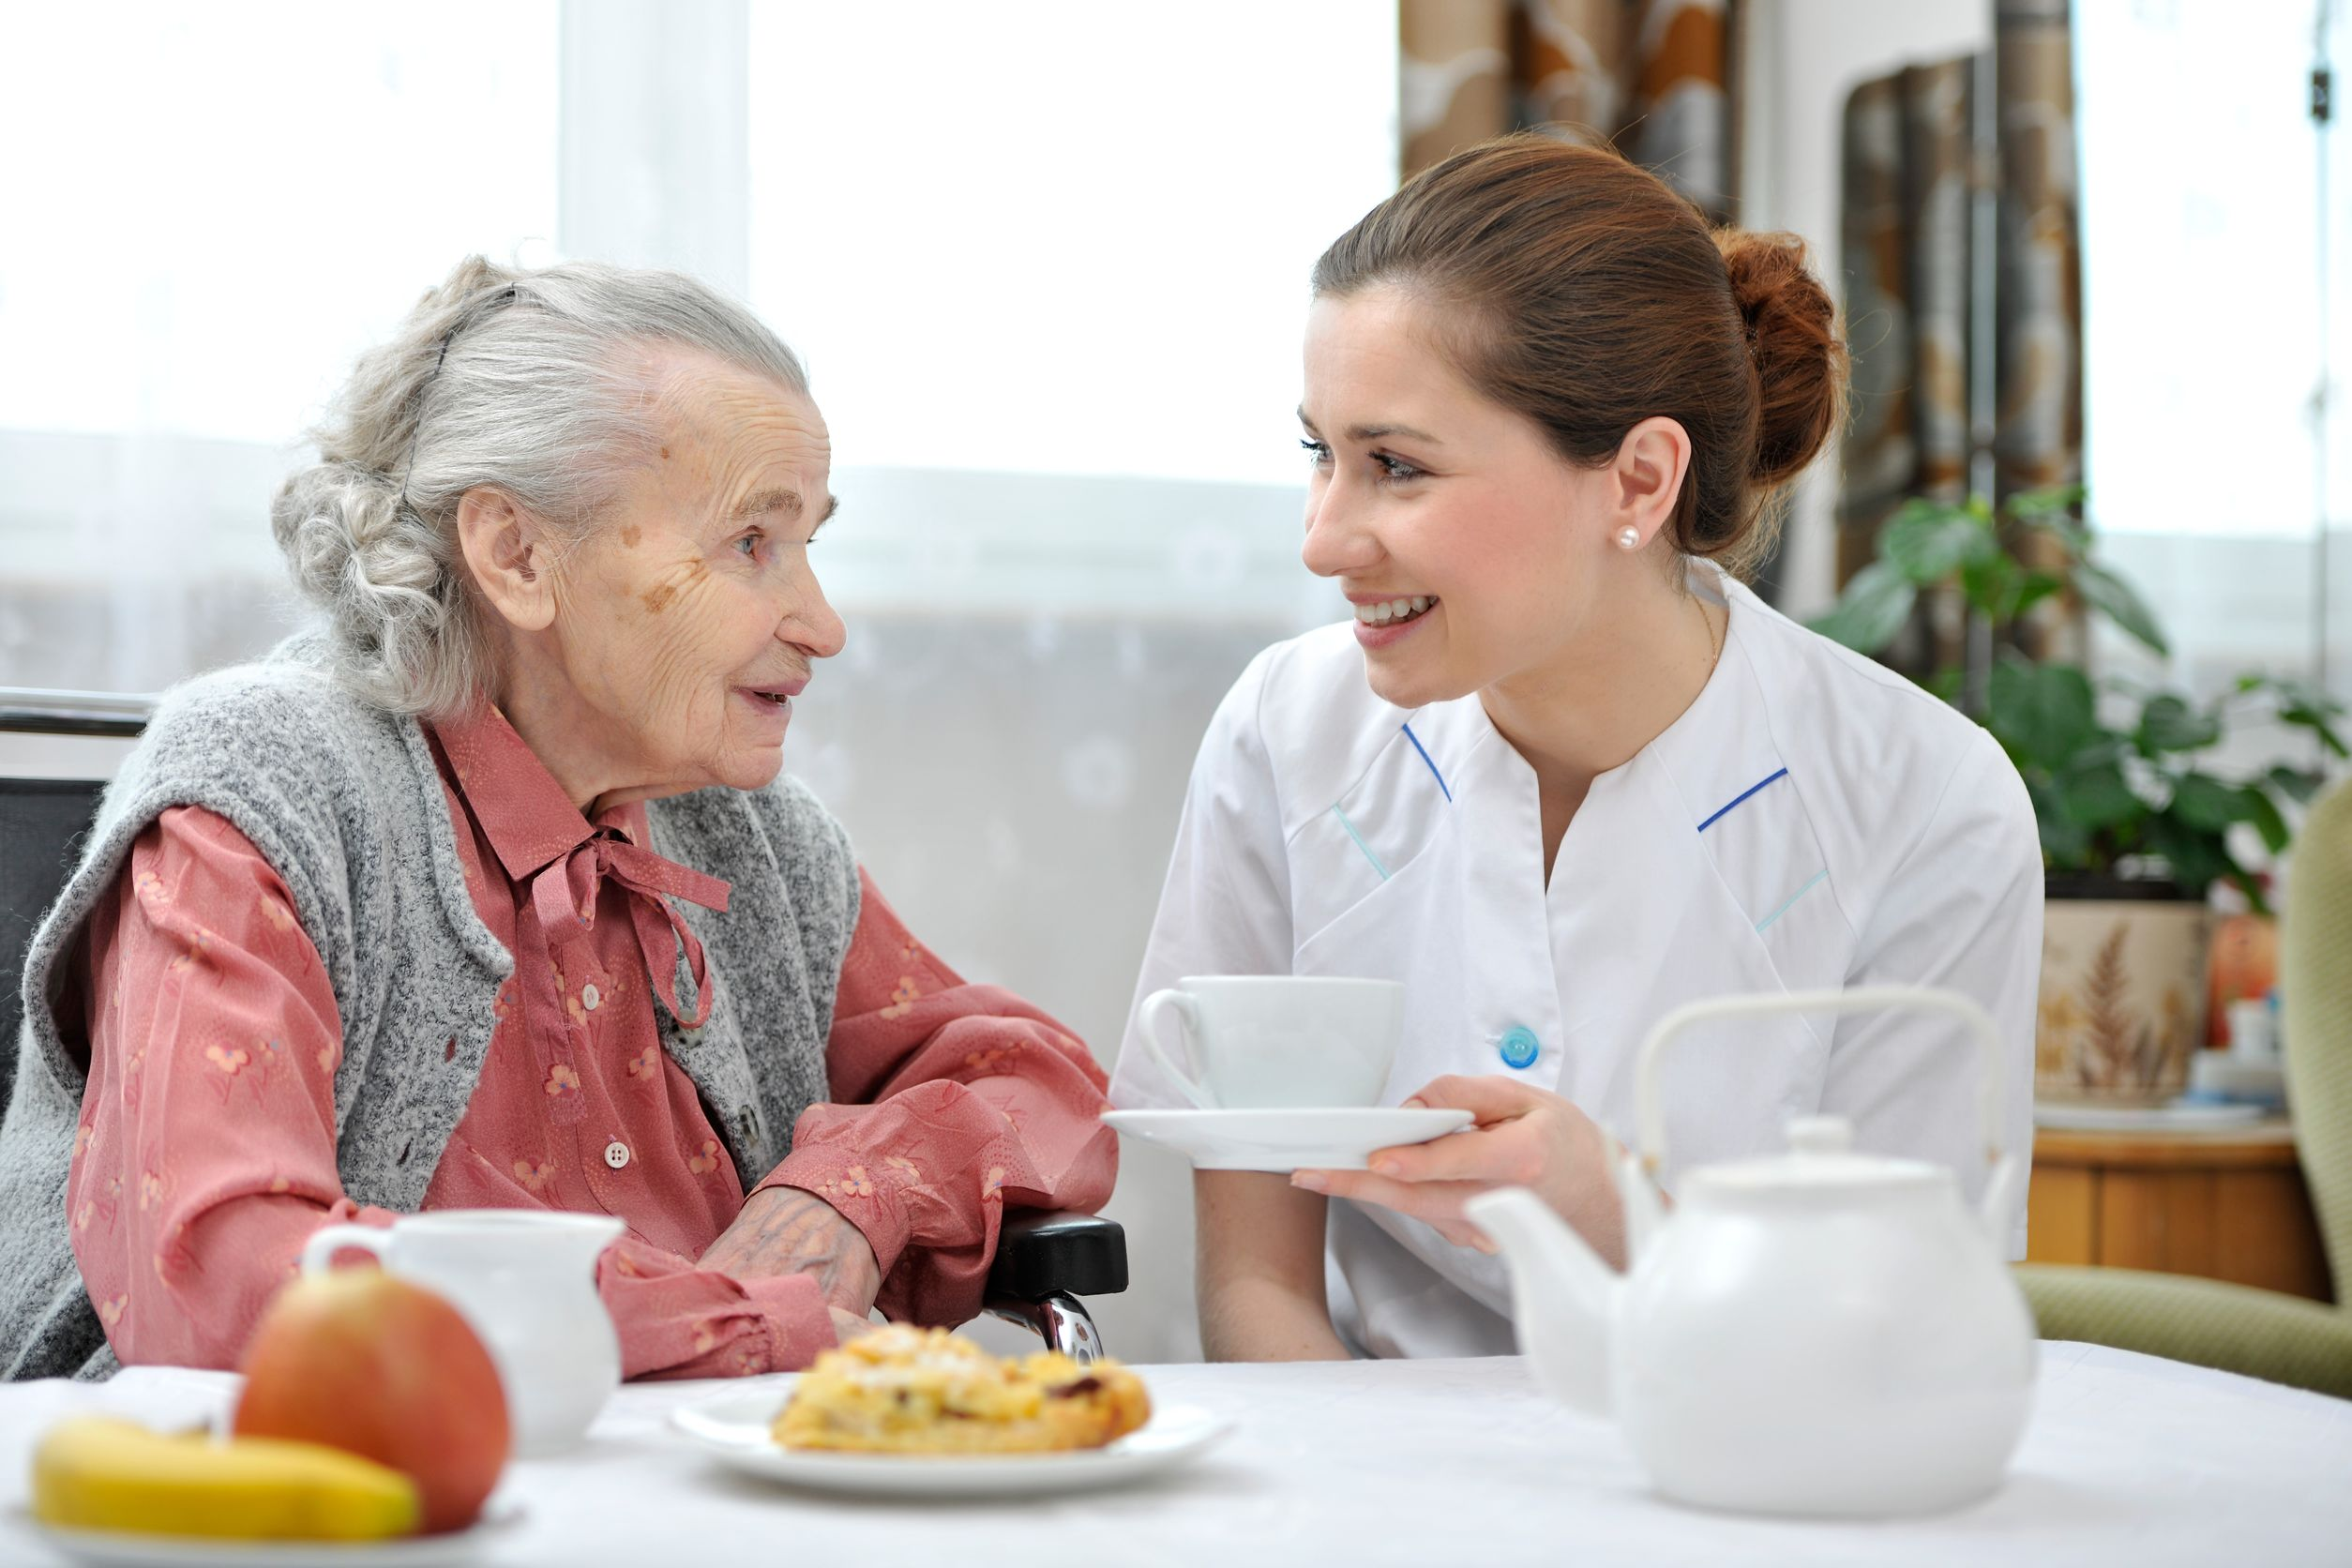 All you need to know on food poisoning in care